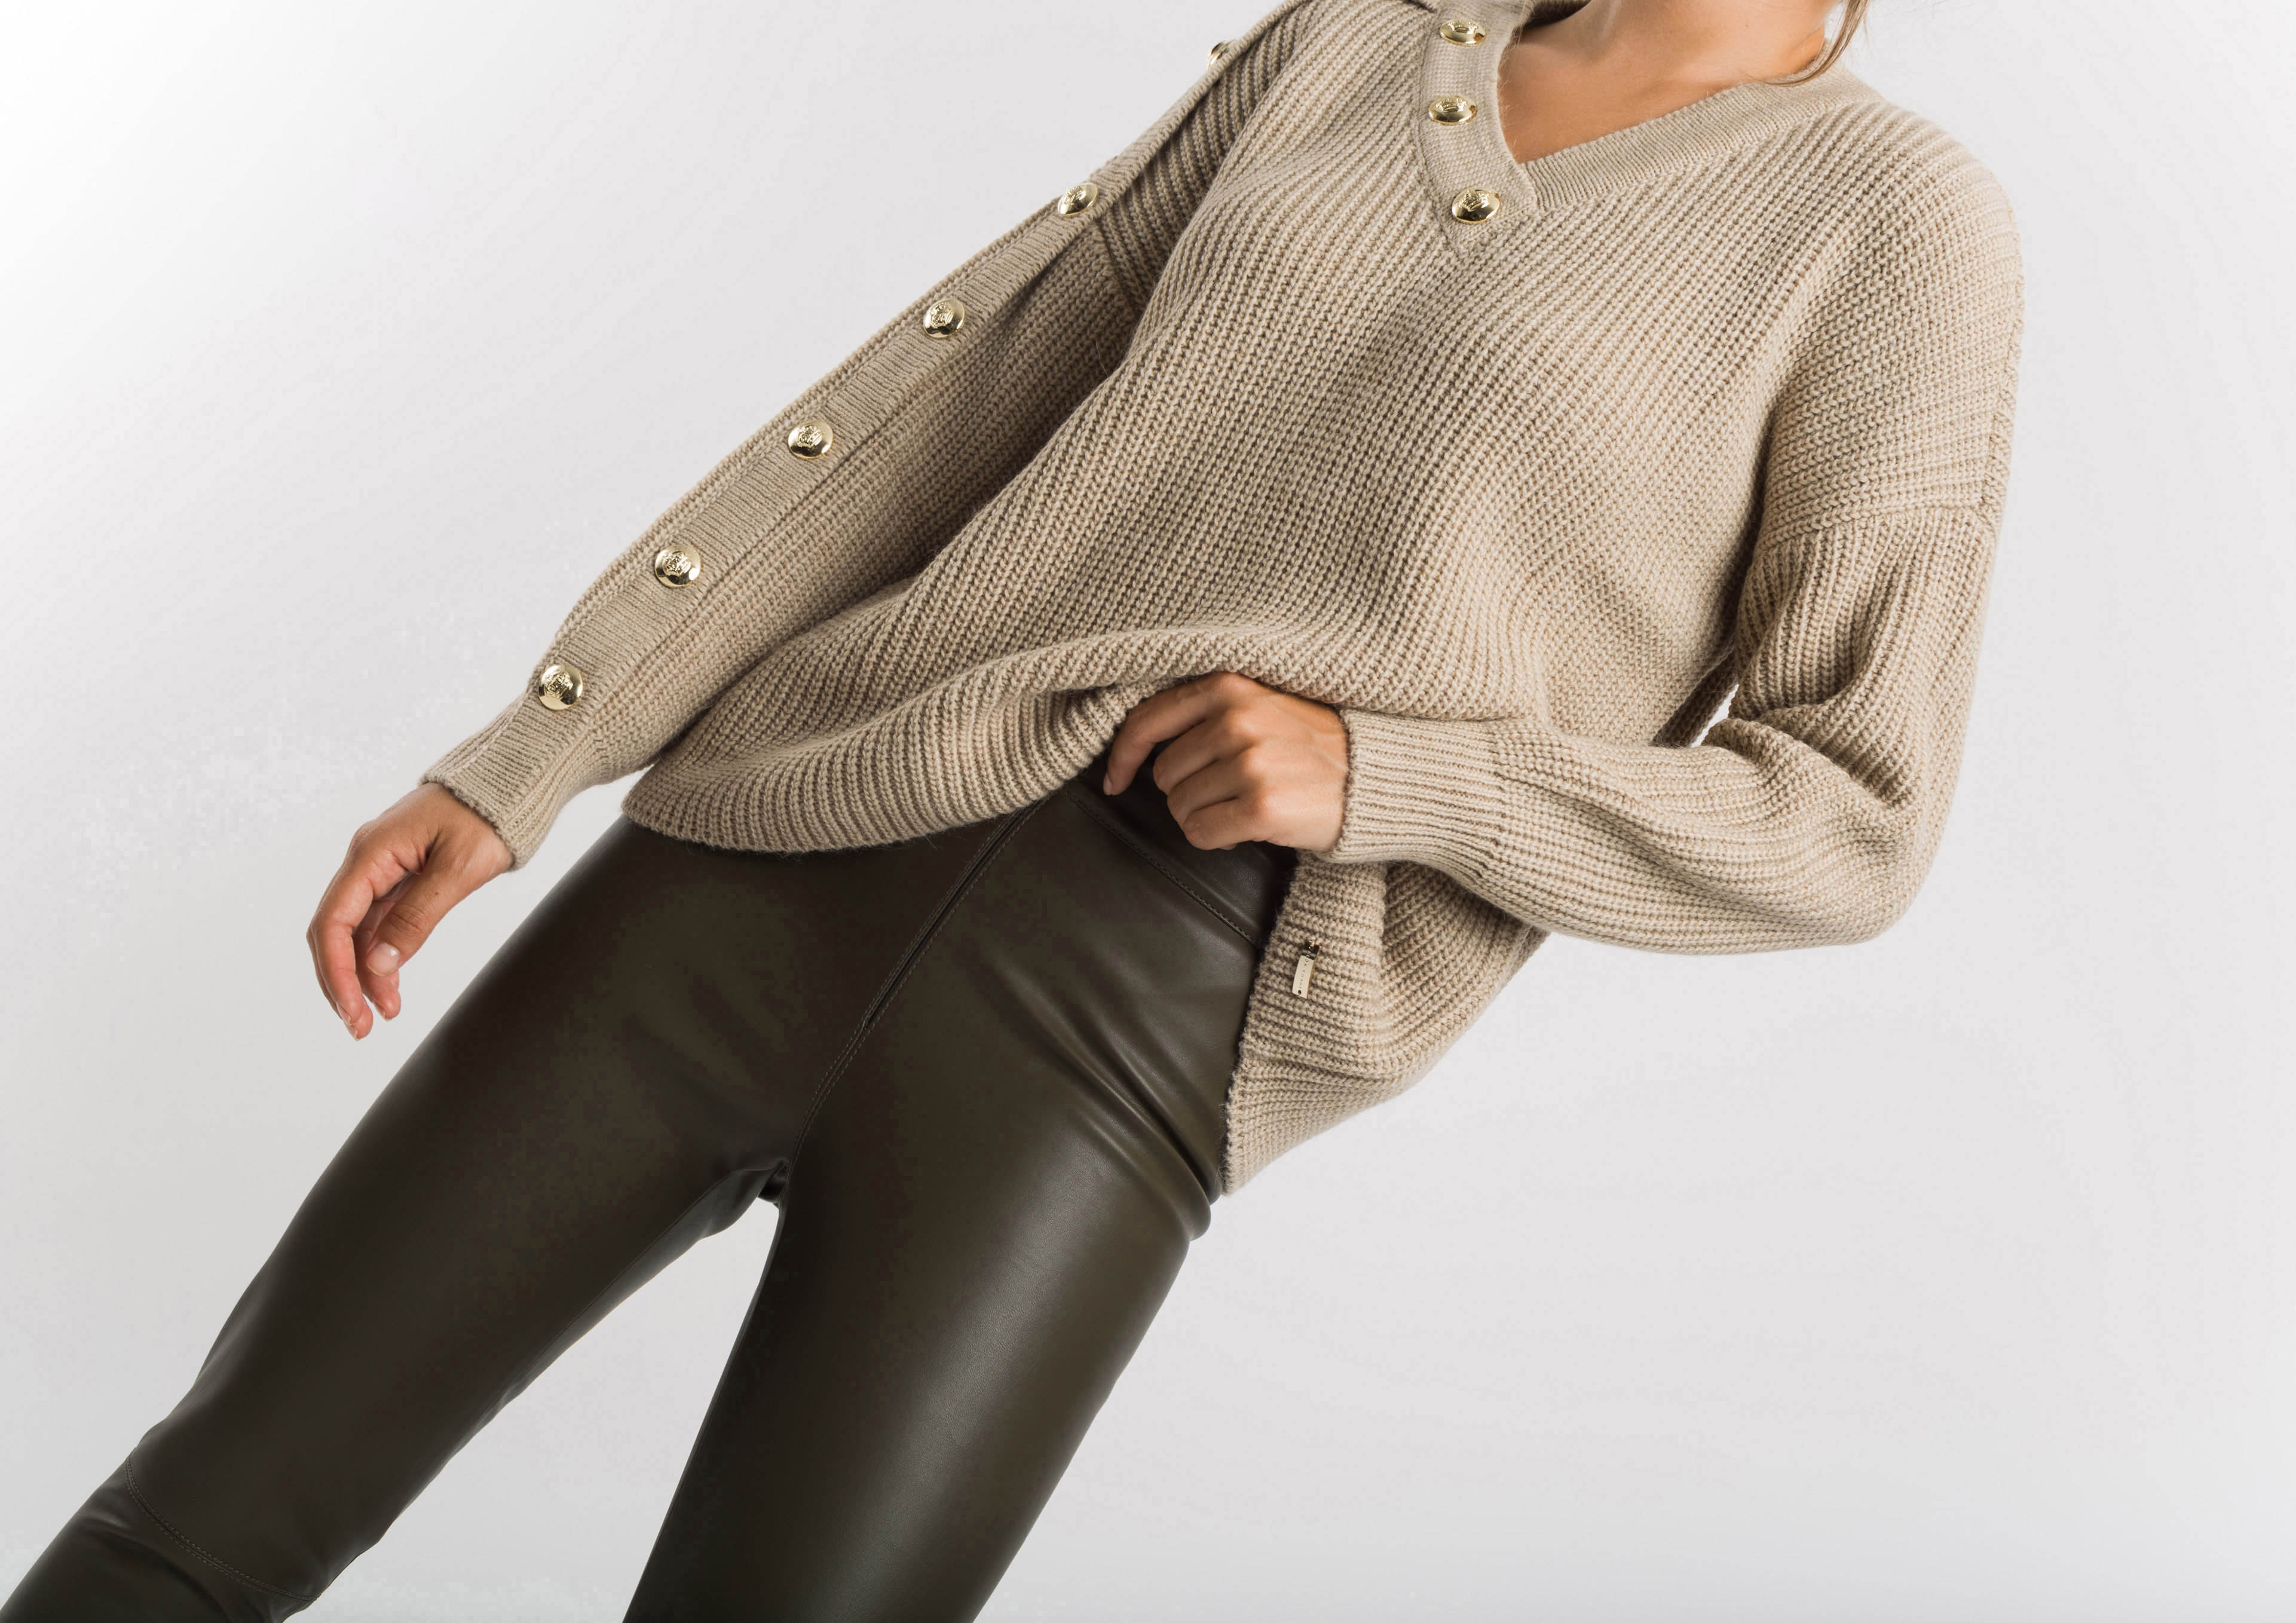 Beige knit jumper